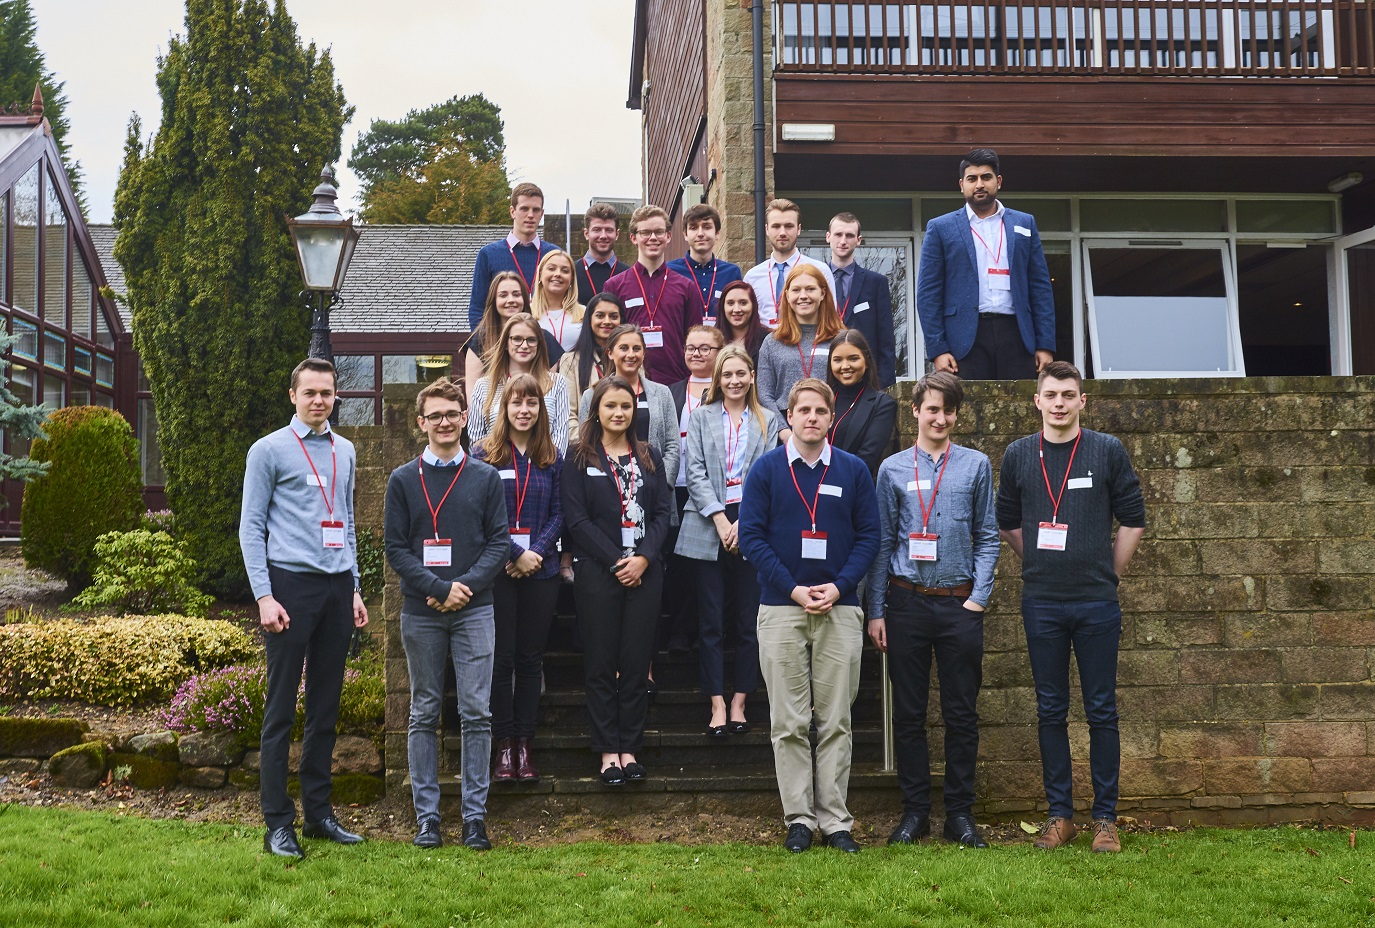 Some of the students who have been given year-long work placements at Hazelwood company Lubrizol, which is planning to increase the numbers of students it offers places to next year. Penguin PR: public relations, media and communications